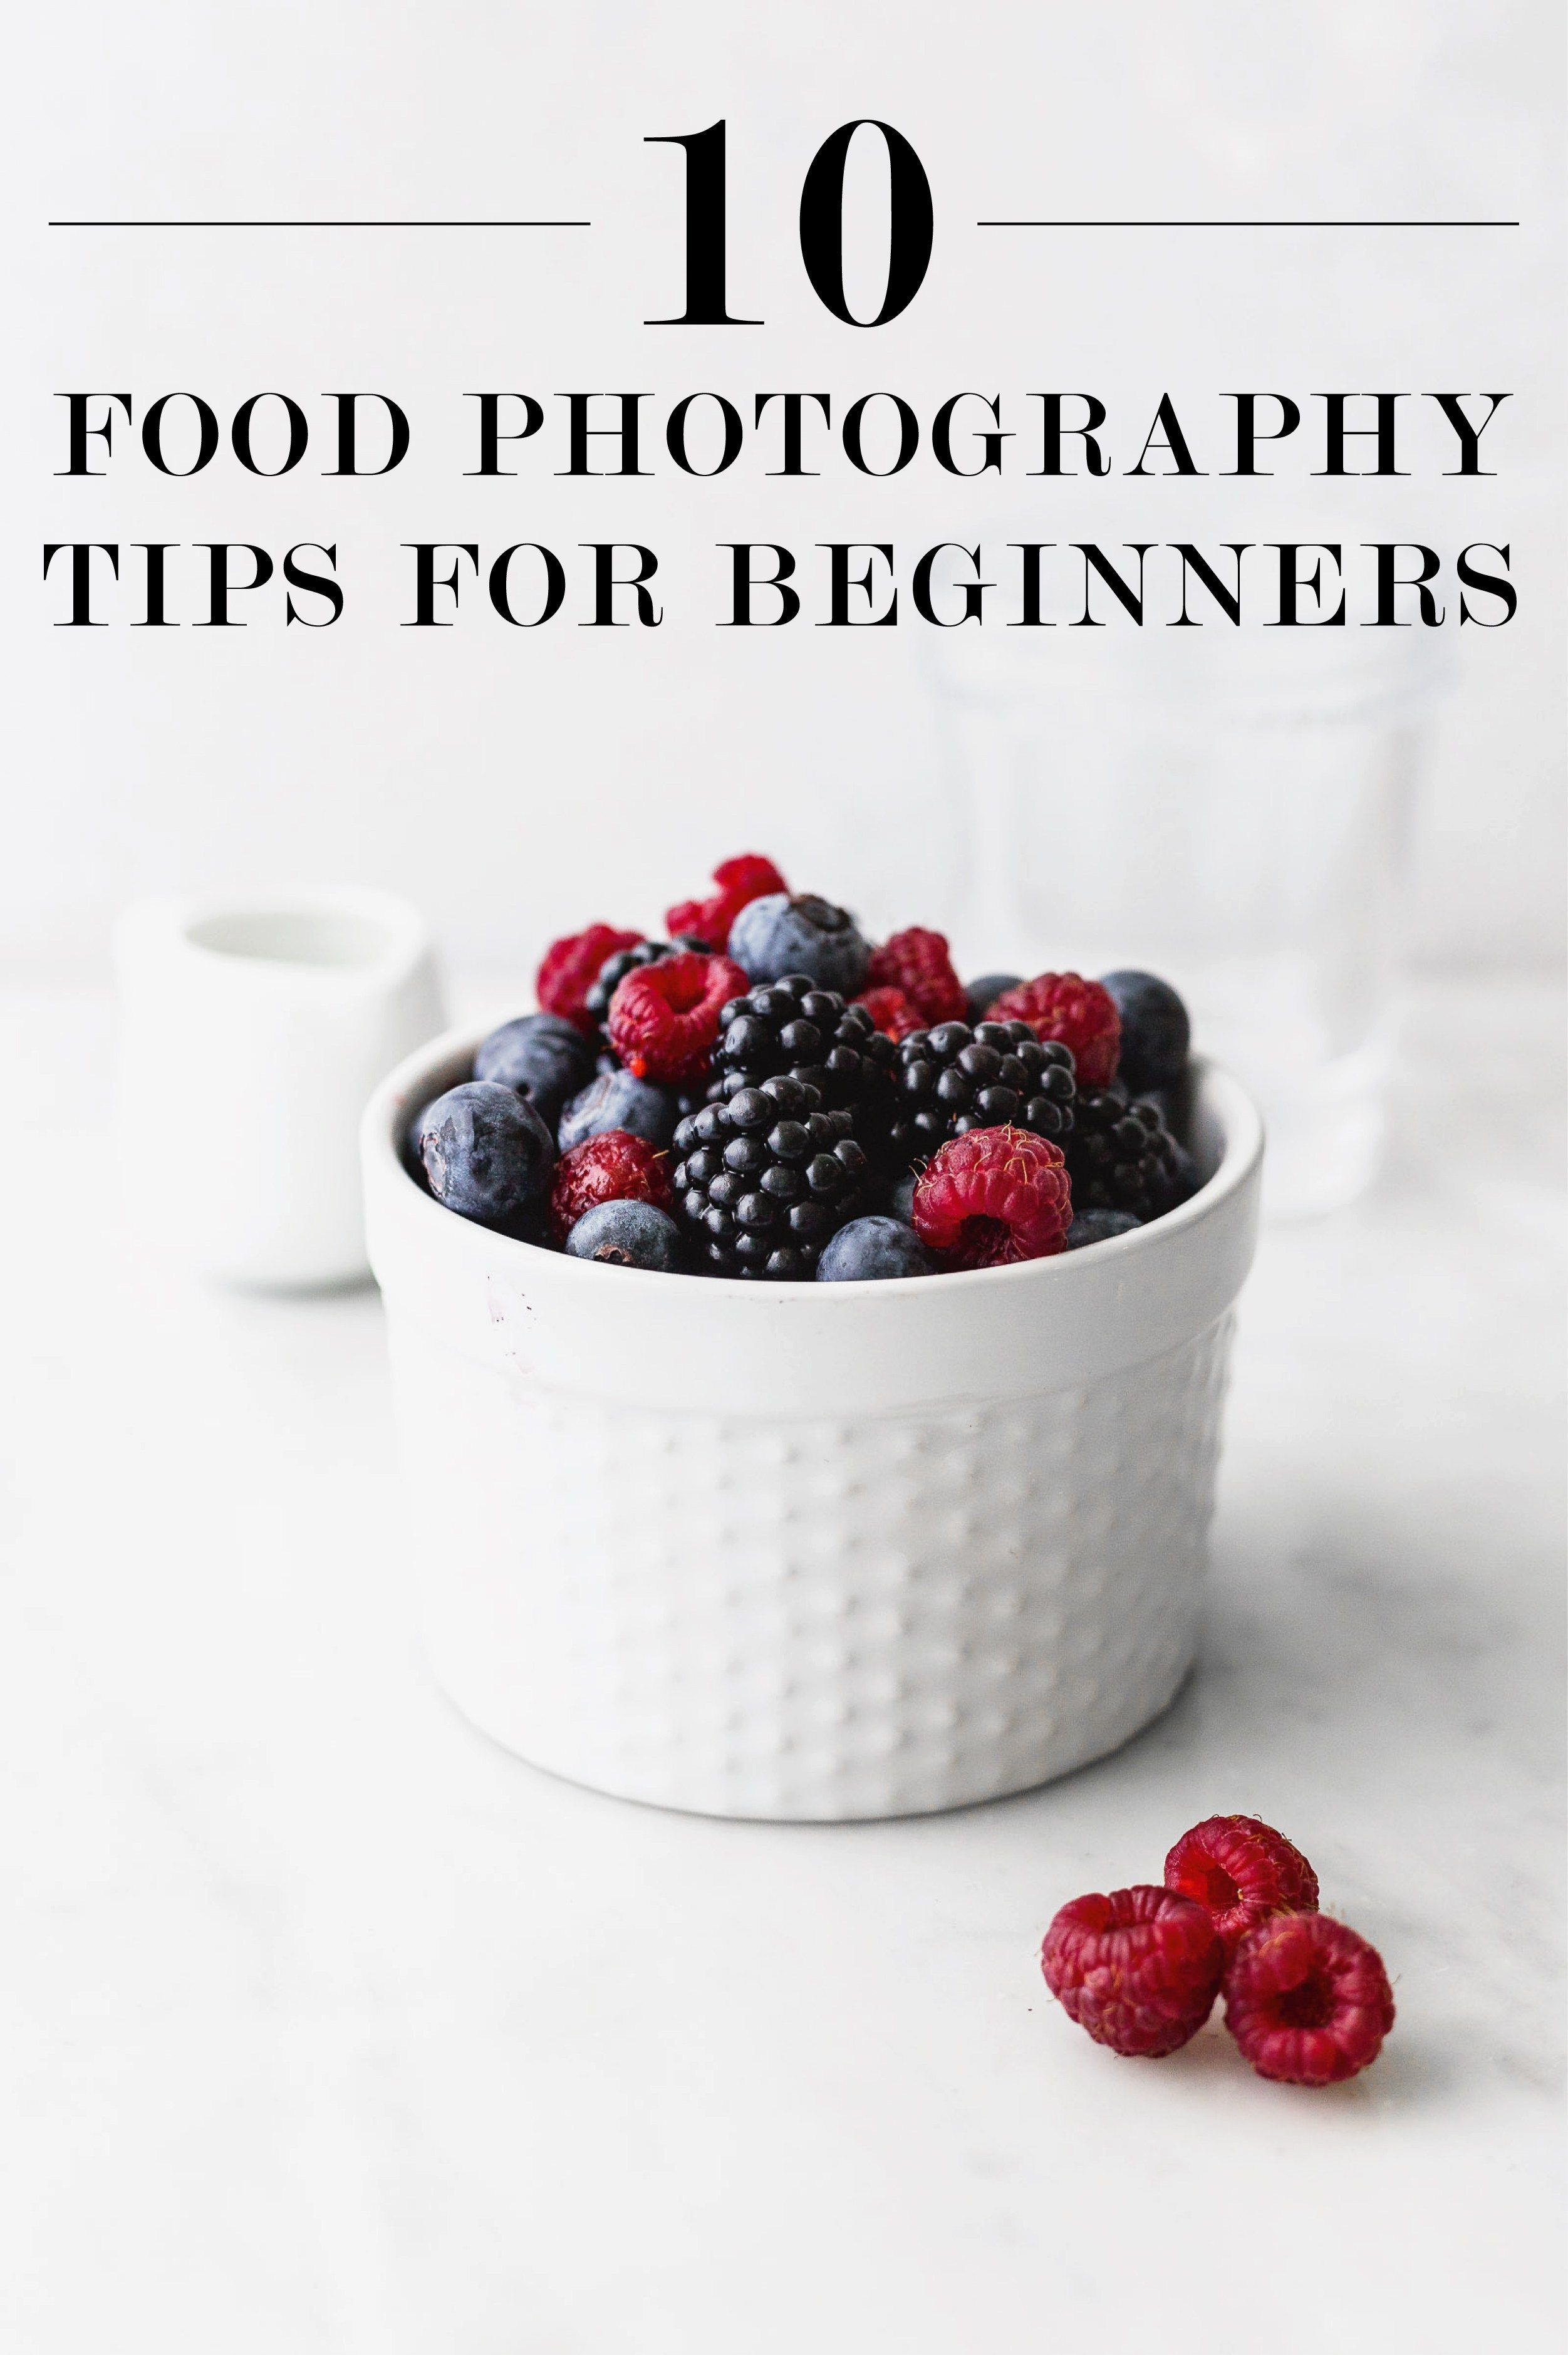 10 Food Photography Tips For Beginners